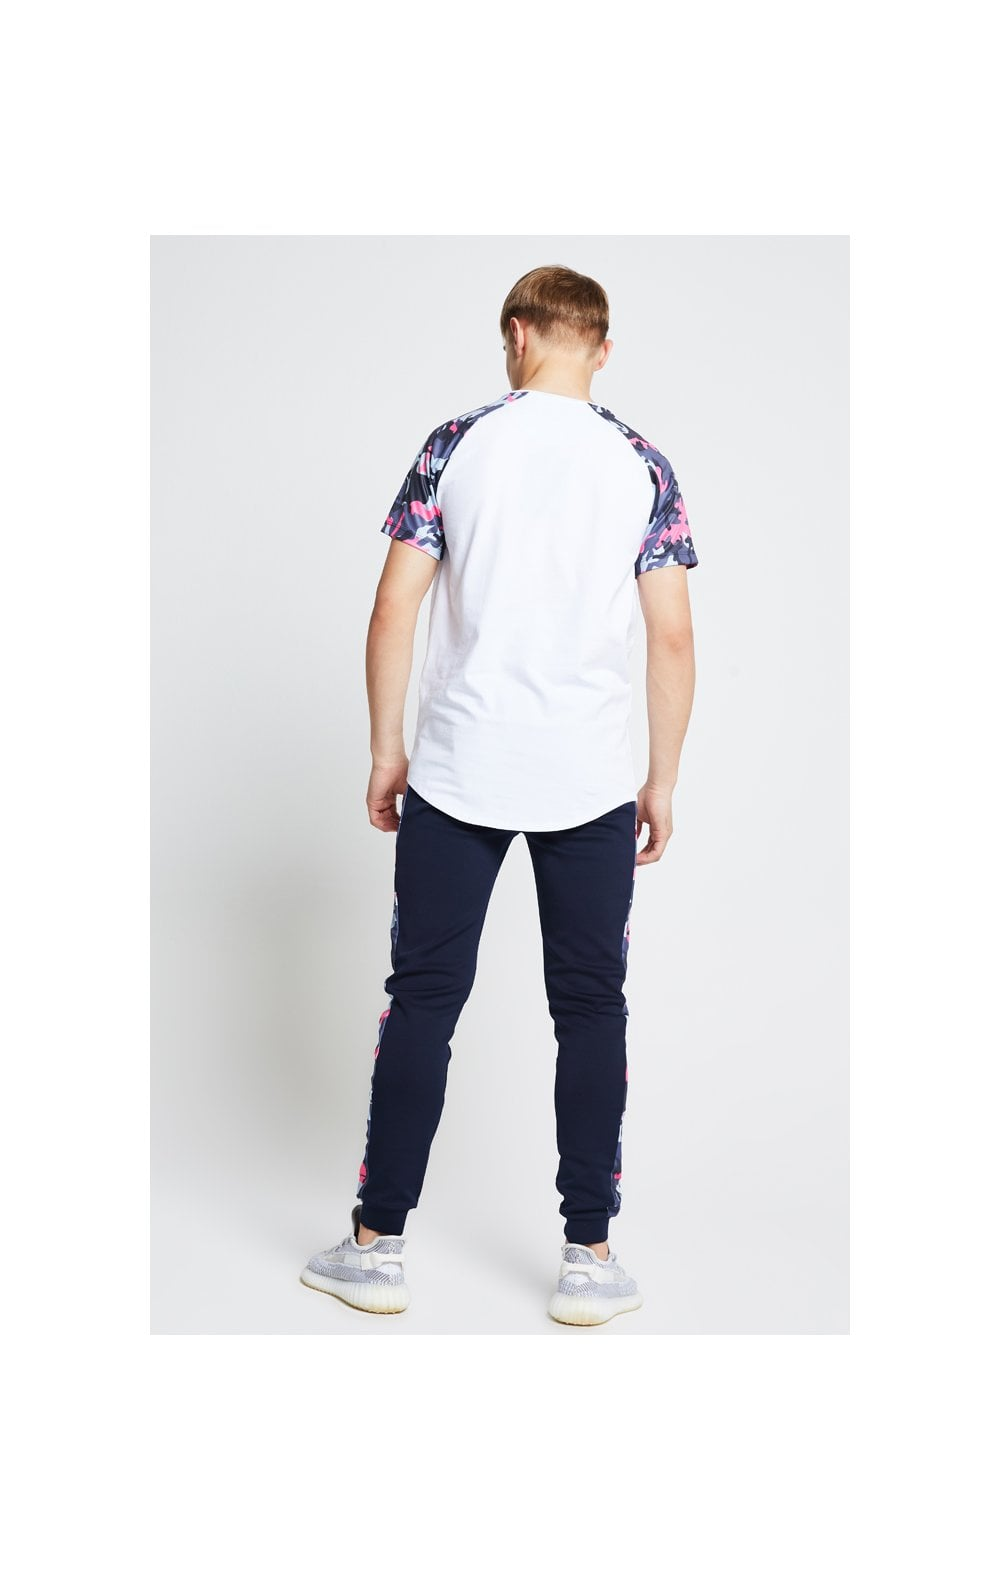 Load image into Gallery viewer, Illusive London Raglan Tee – White & Neon Pink Camo (5)